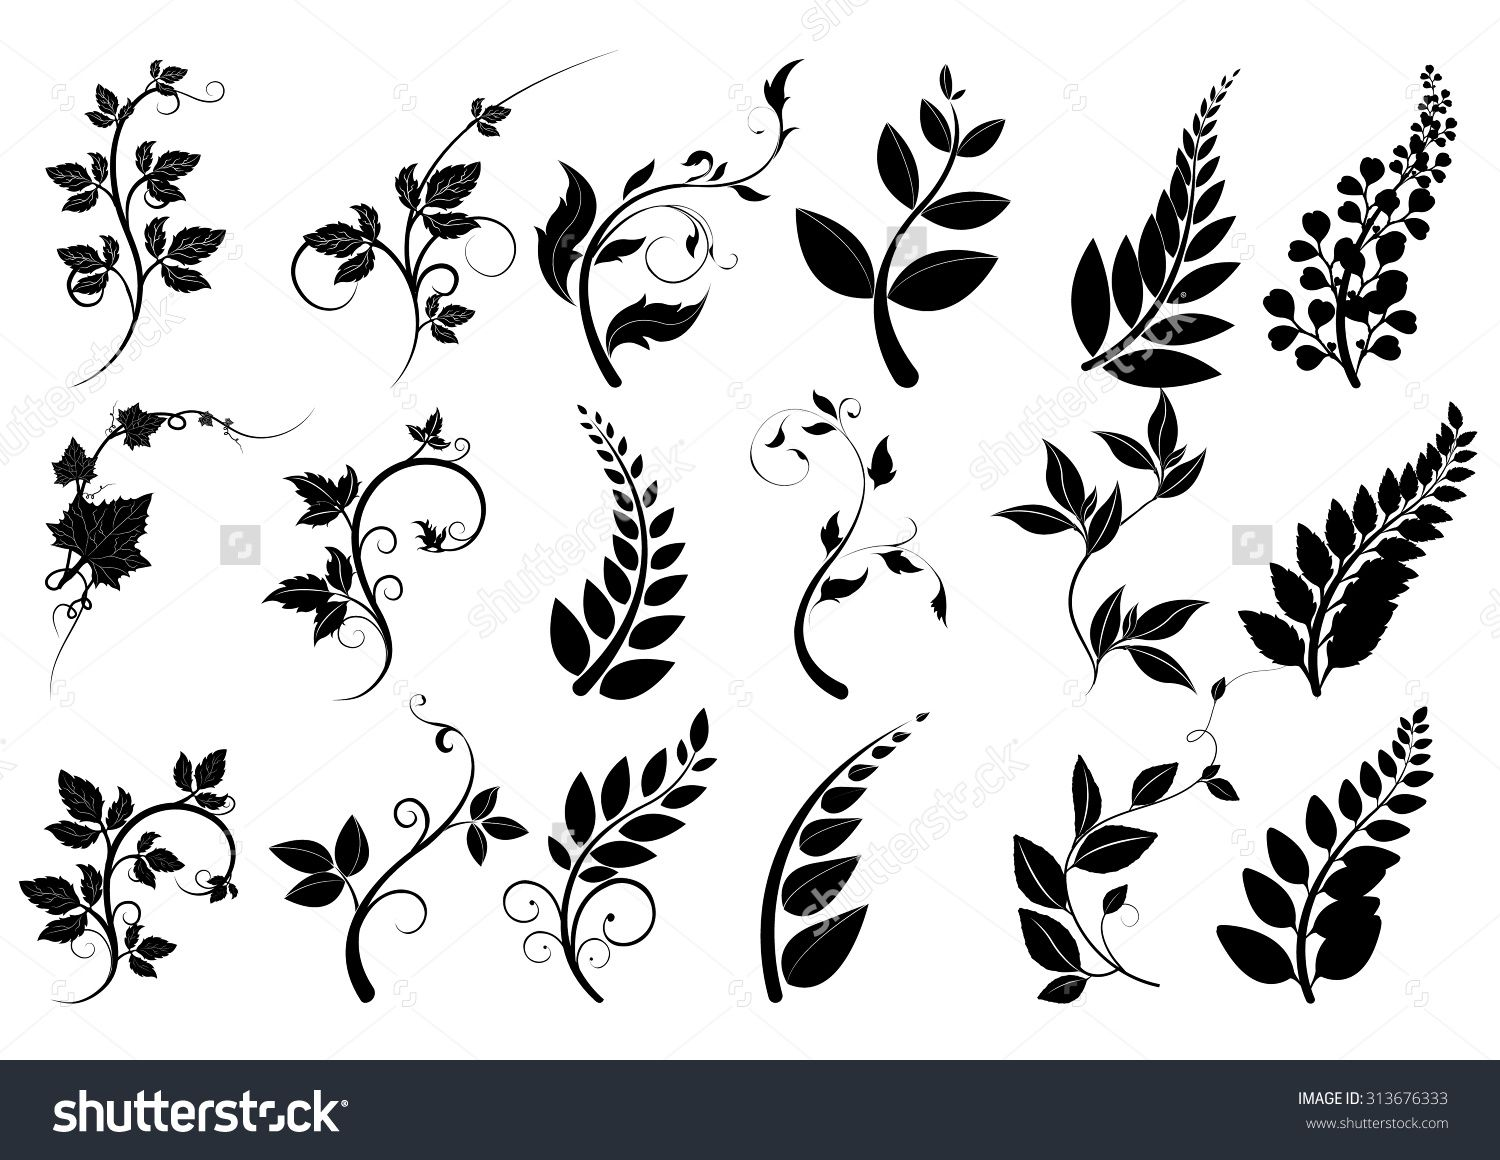 Line Drawing Flower Vector : Silhouettes of trees leaves vector line borders text dividers and